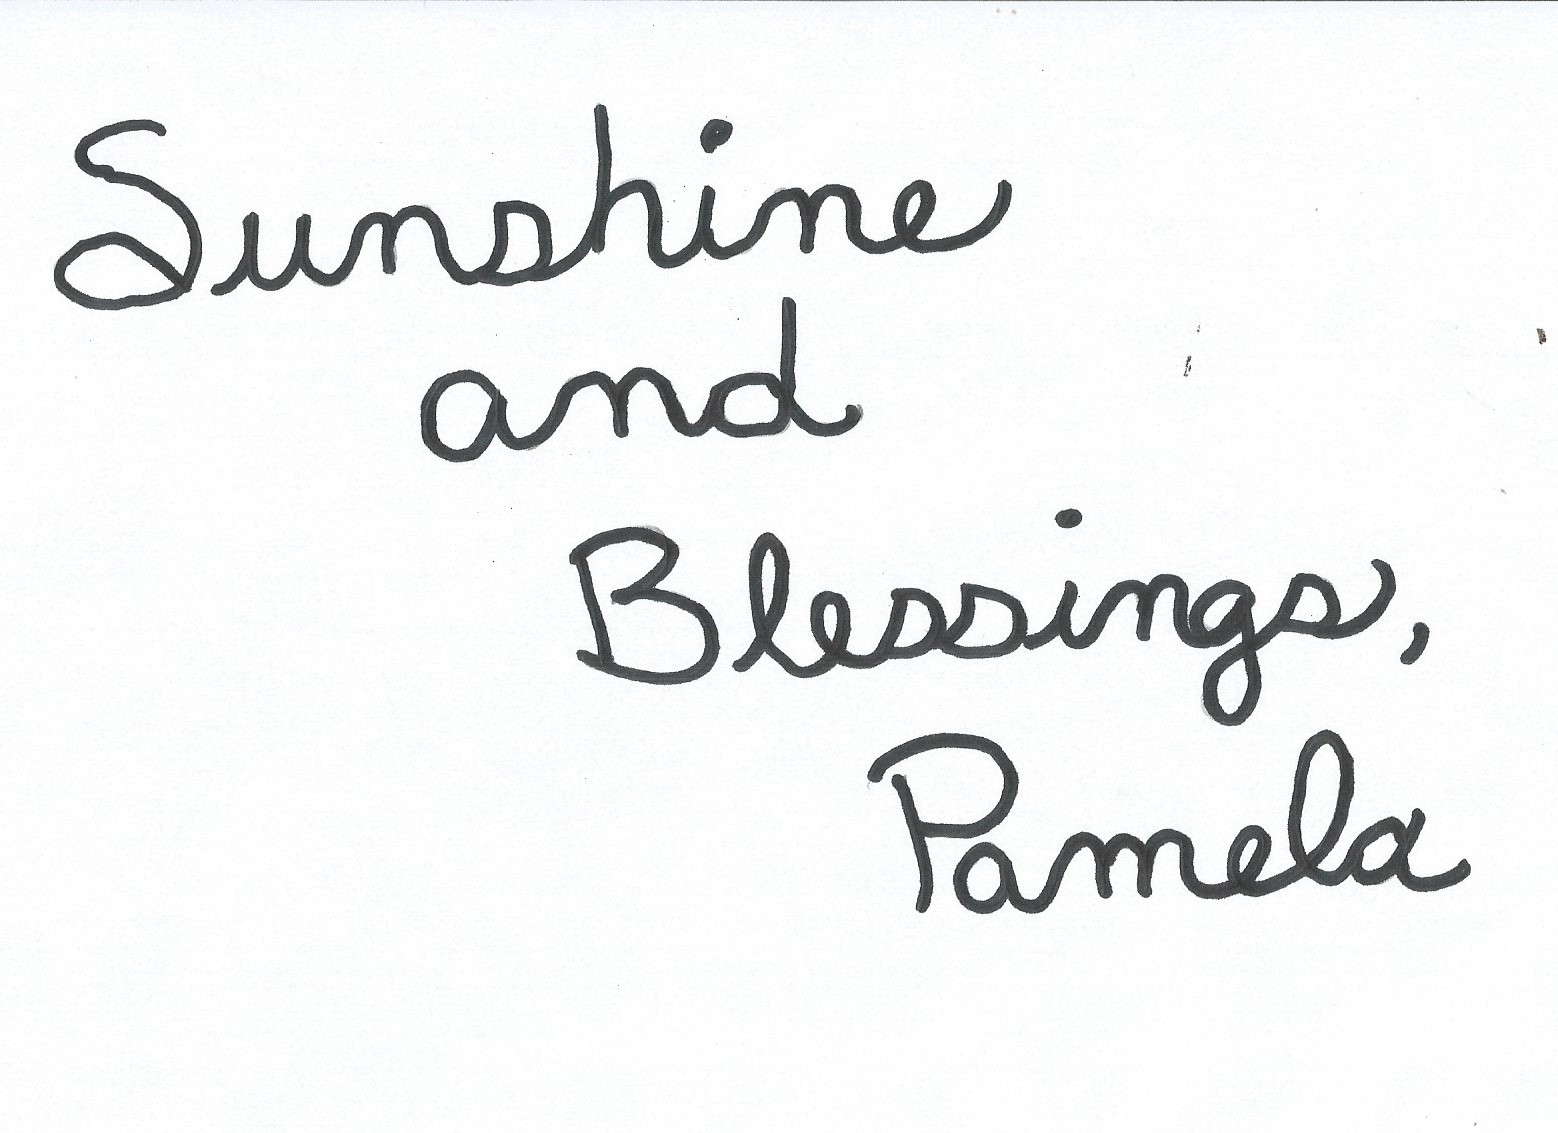 Sunshine and Blessings